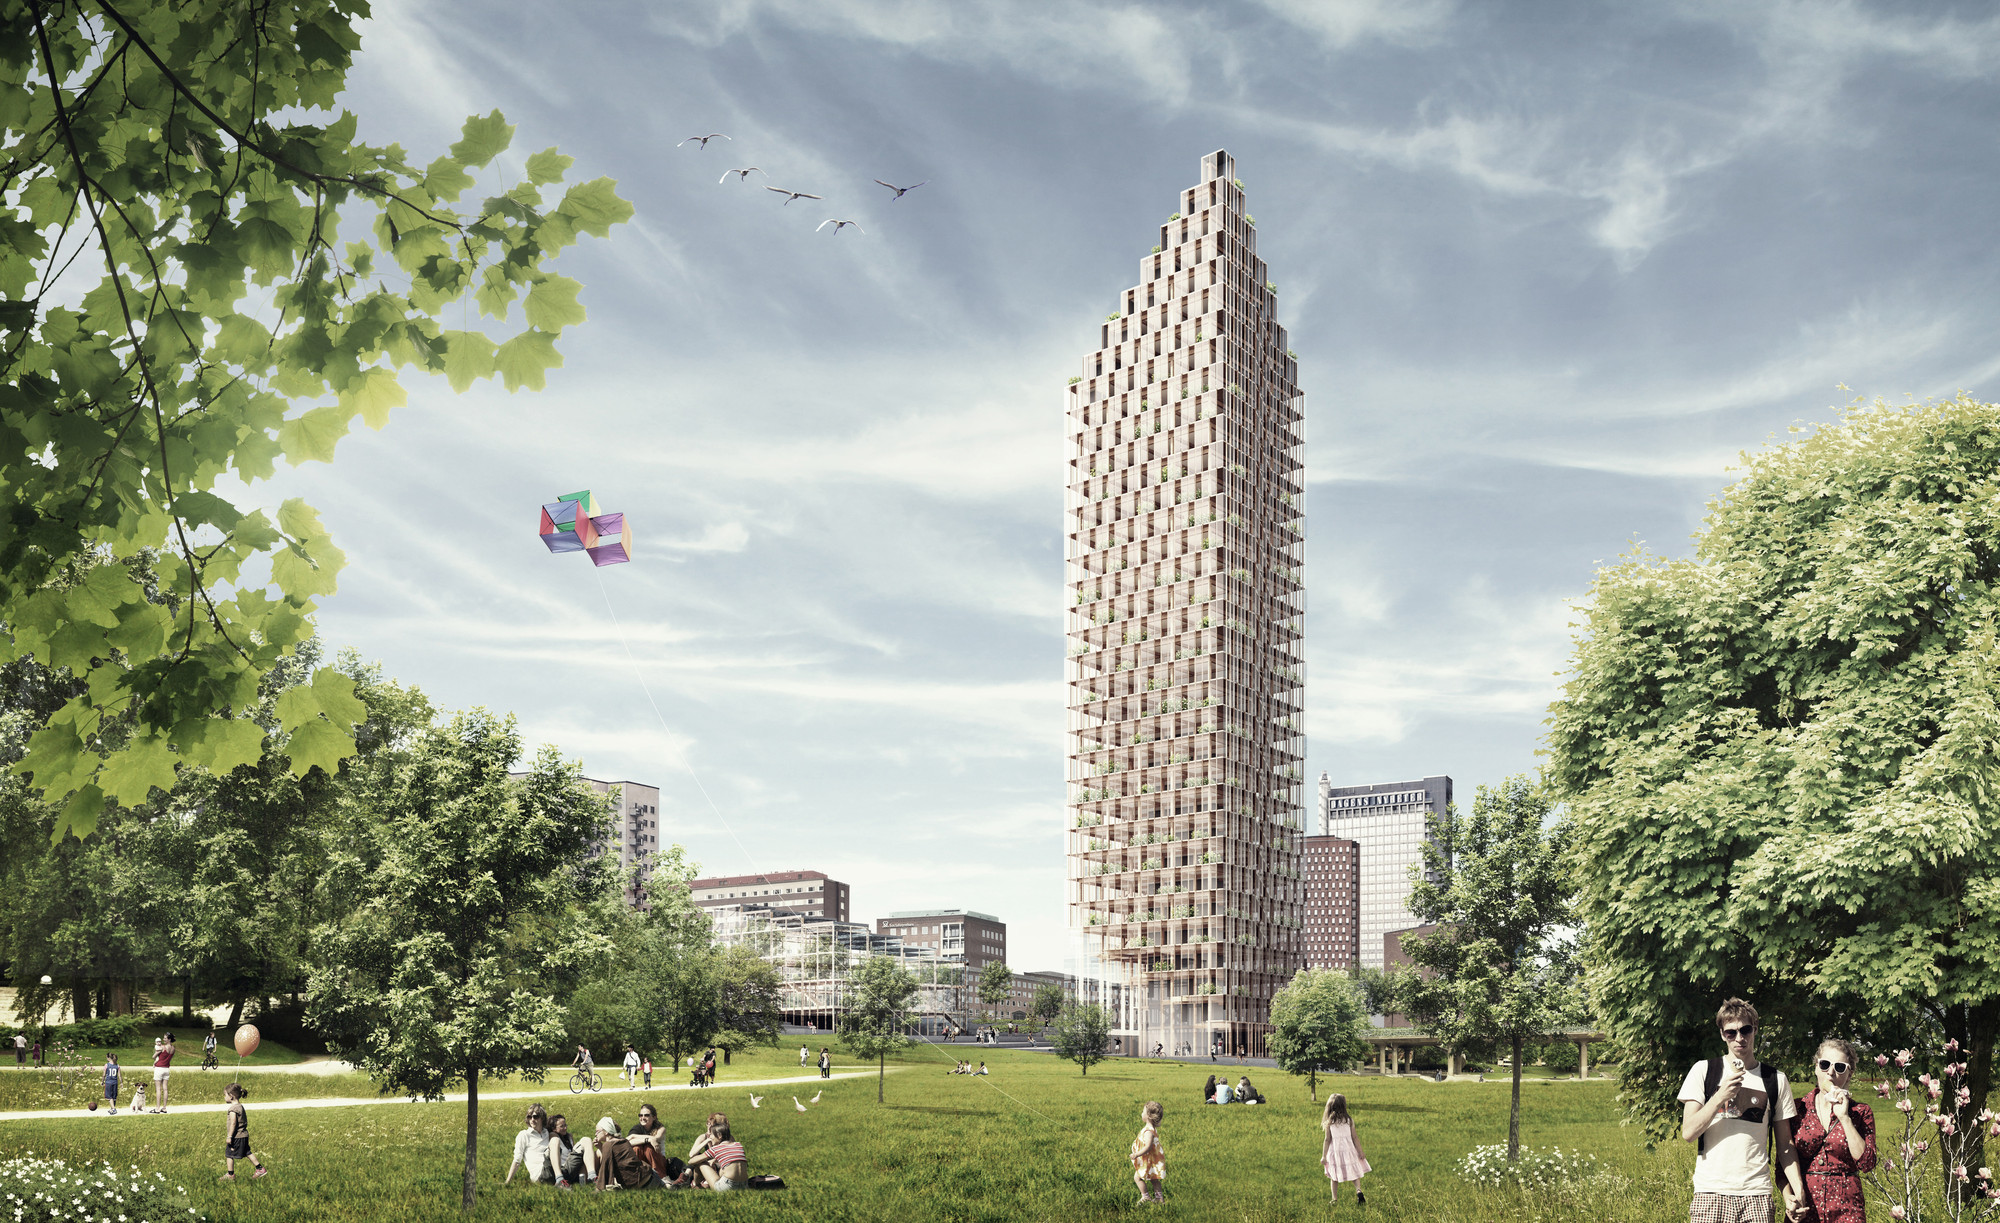 C.F. Møller and DinnellJohansson's Wooden Skyscraper Wins International Competition, Wooden Skyscraper from the park. Image Courtesy of C.F. Møller and DinellJohansson